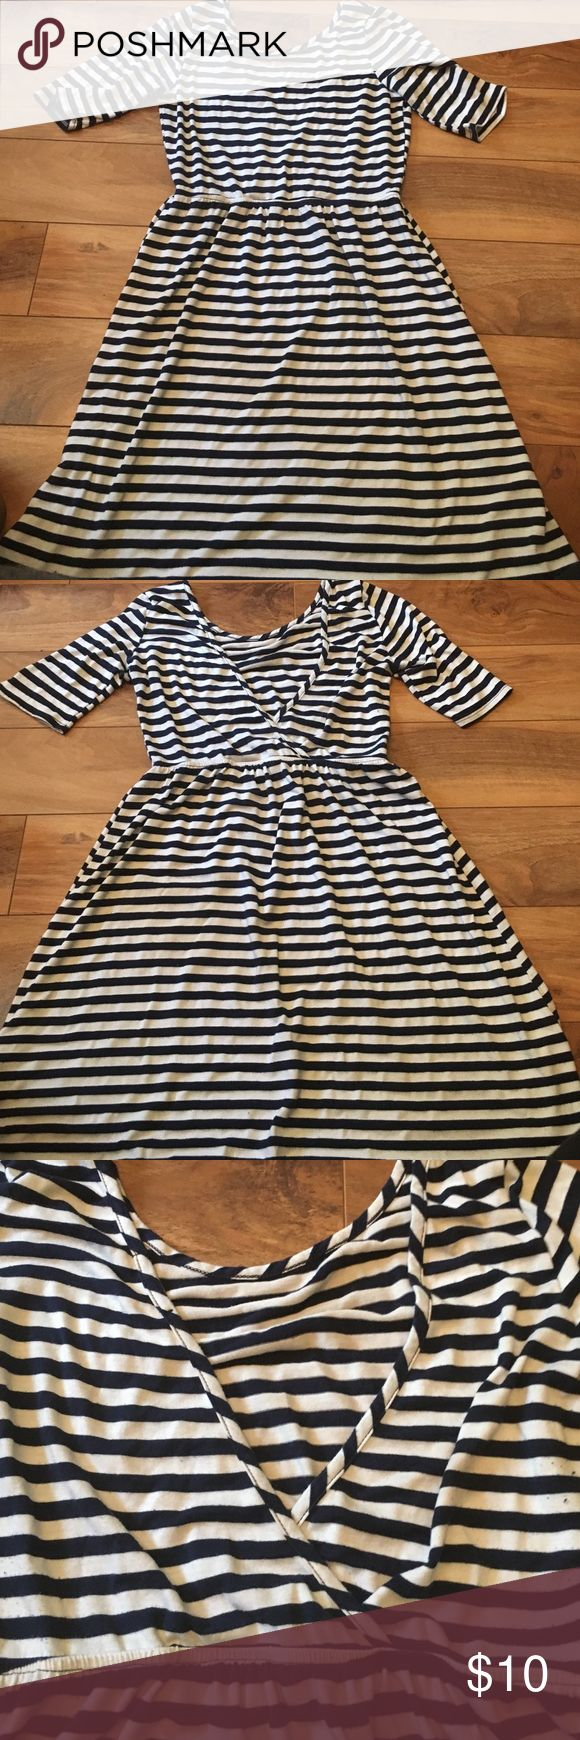 Stripe nautical dress Navy and white stripe dress. Short sleeve with low cut back and elastic waist. Super cute belted and sandals or boots. Brand Dee Elle, size L (fits more like a M). A little bit of pilling in fabric but overall good condition. Dee elle Dresses